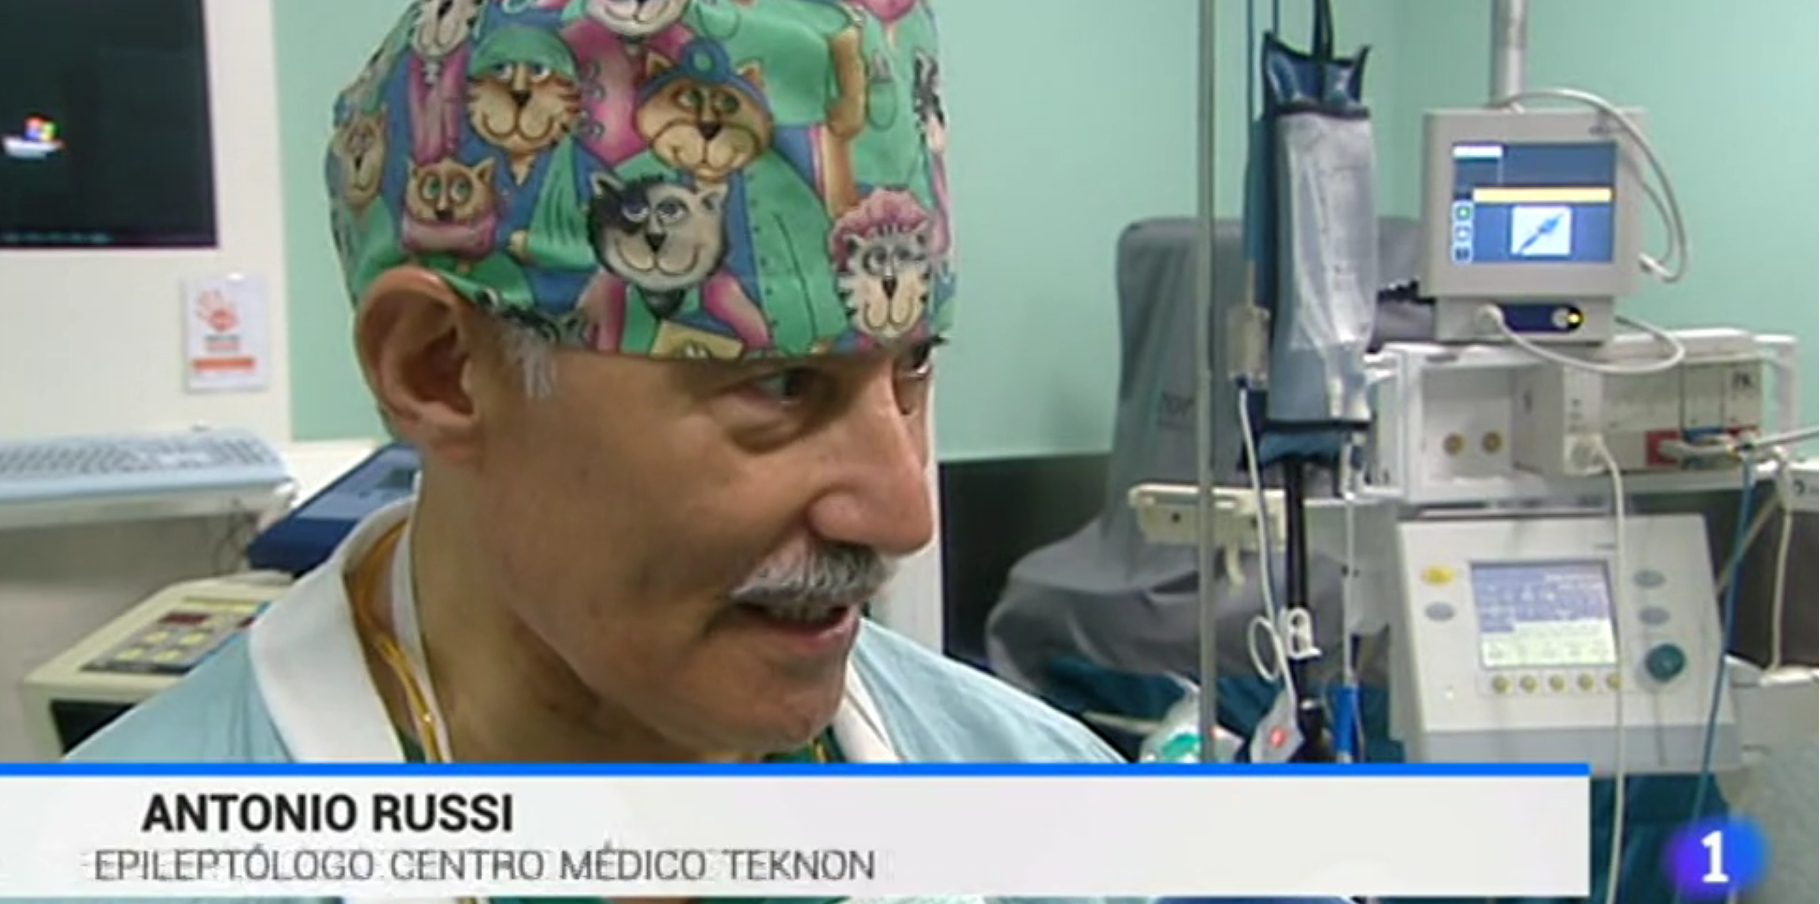 Dr.Russi